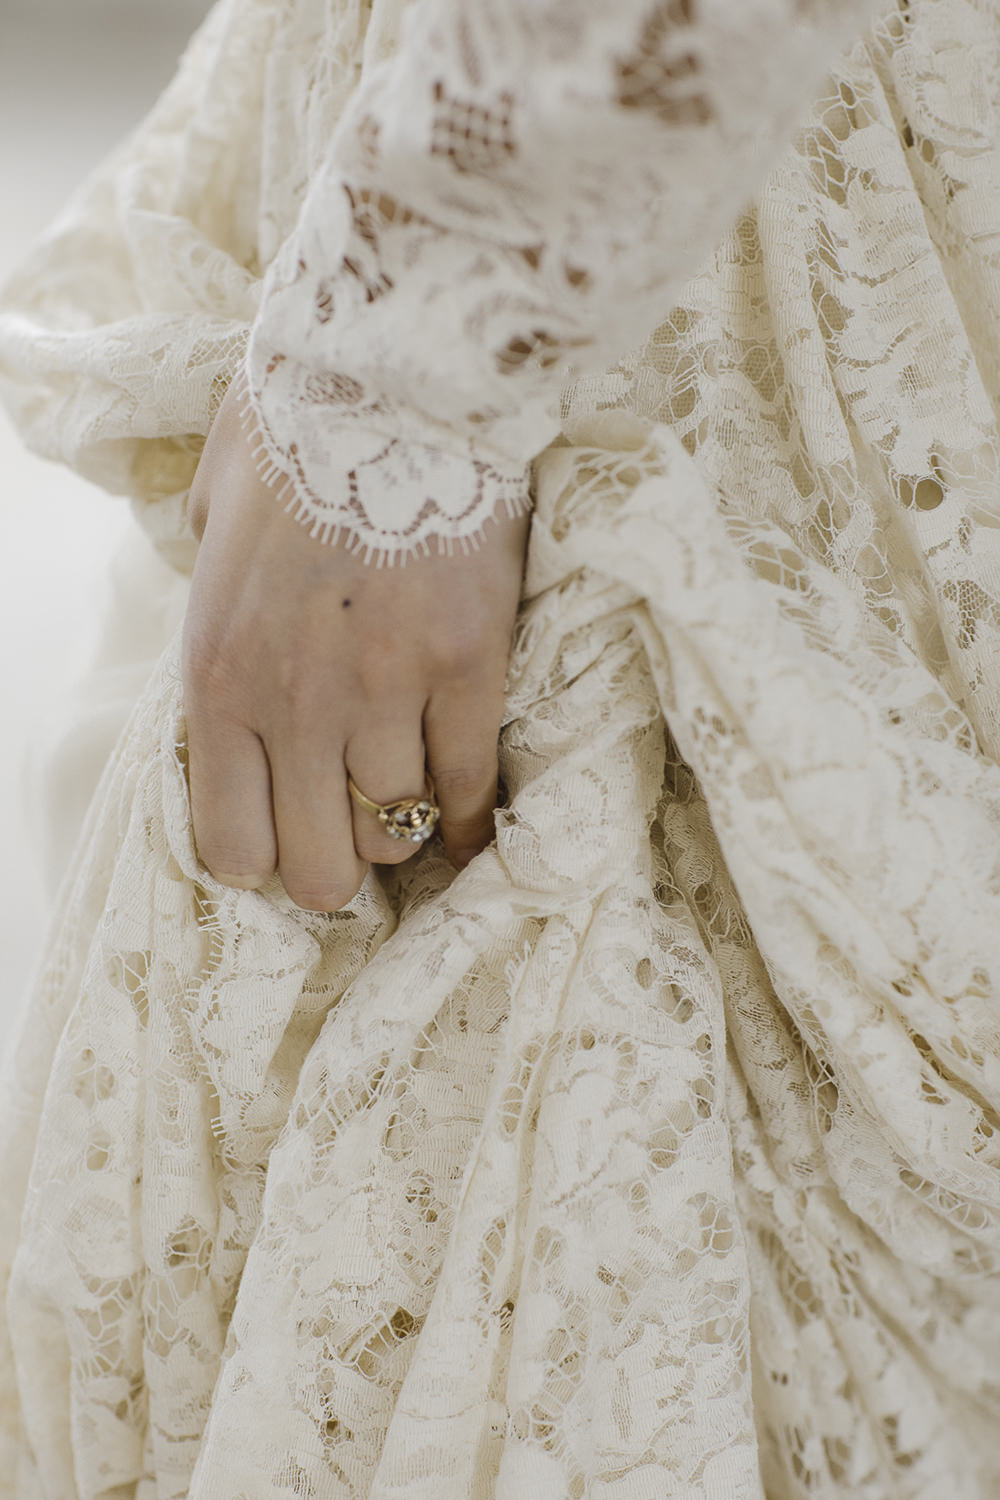 Lace Dress Gown Bride Bridal Long Sleeves Sara Concept Bride Ethereal Artistic Wedding Ideas Francesca Francesca